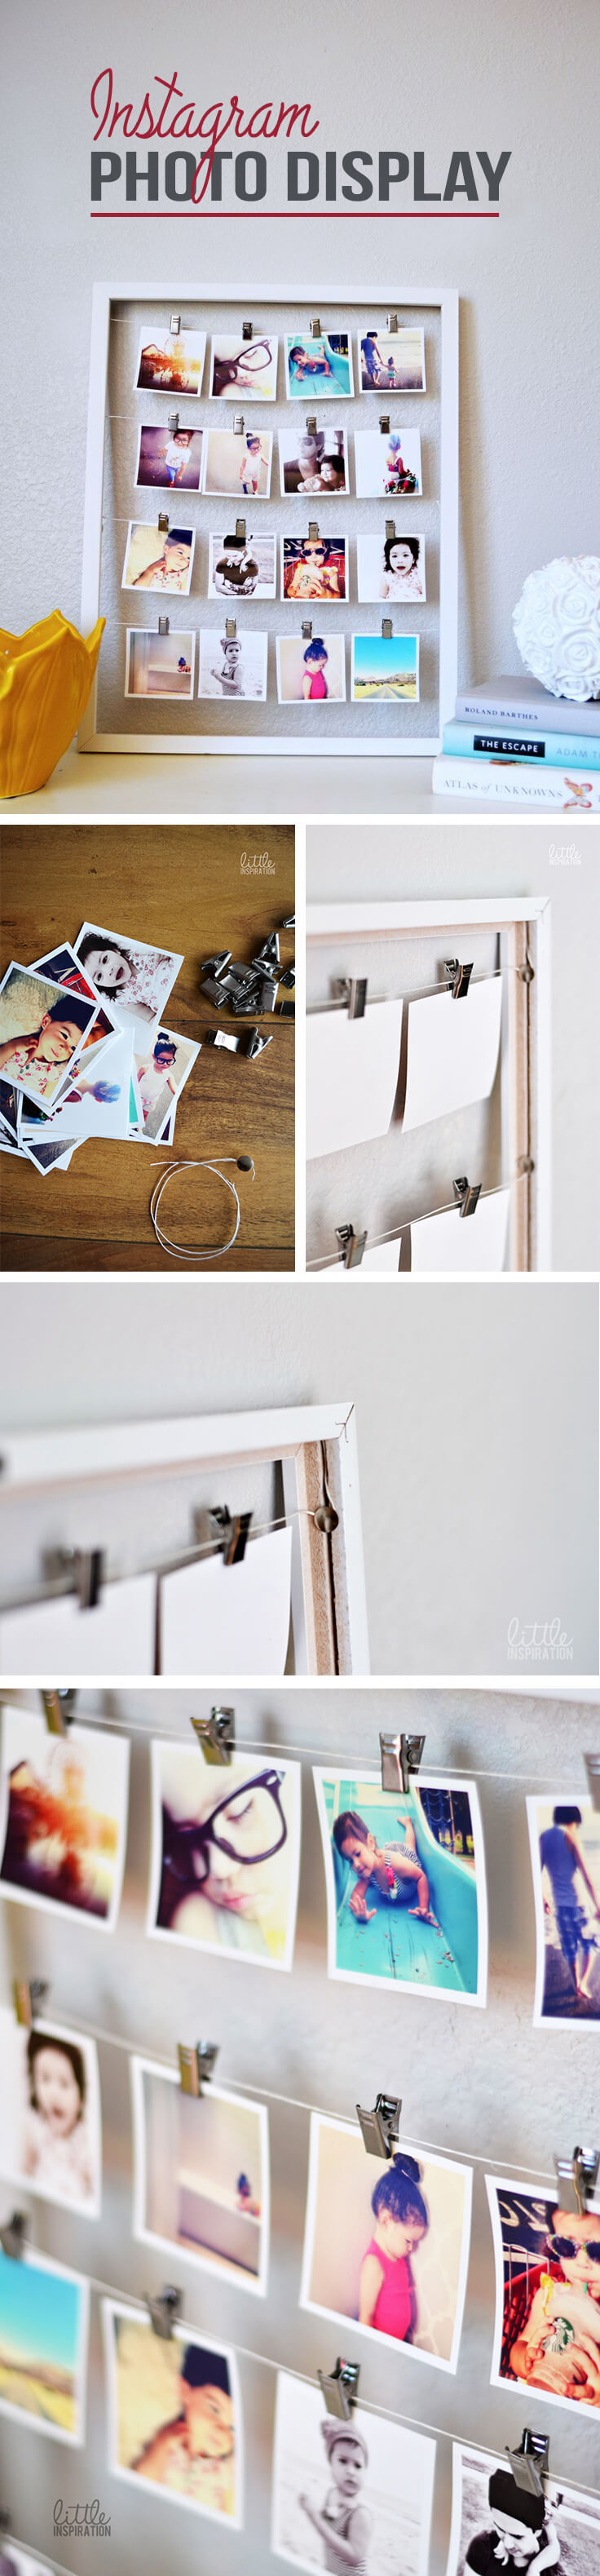 Instagram Photo Display DIY Cozy Bedroom Project